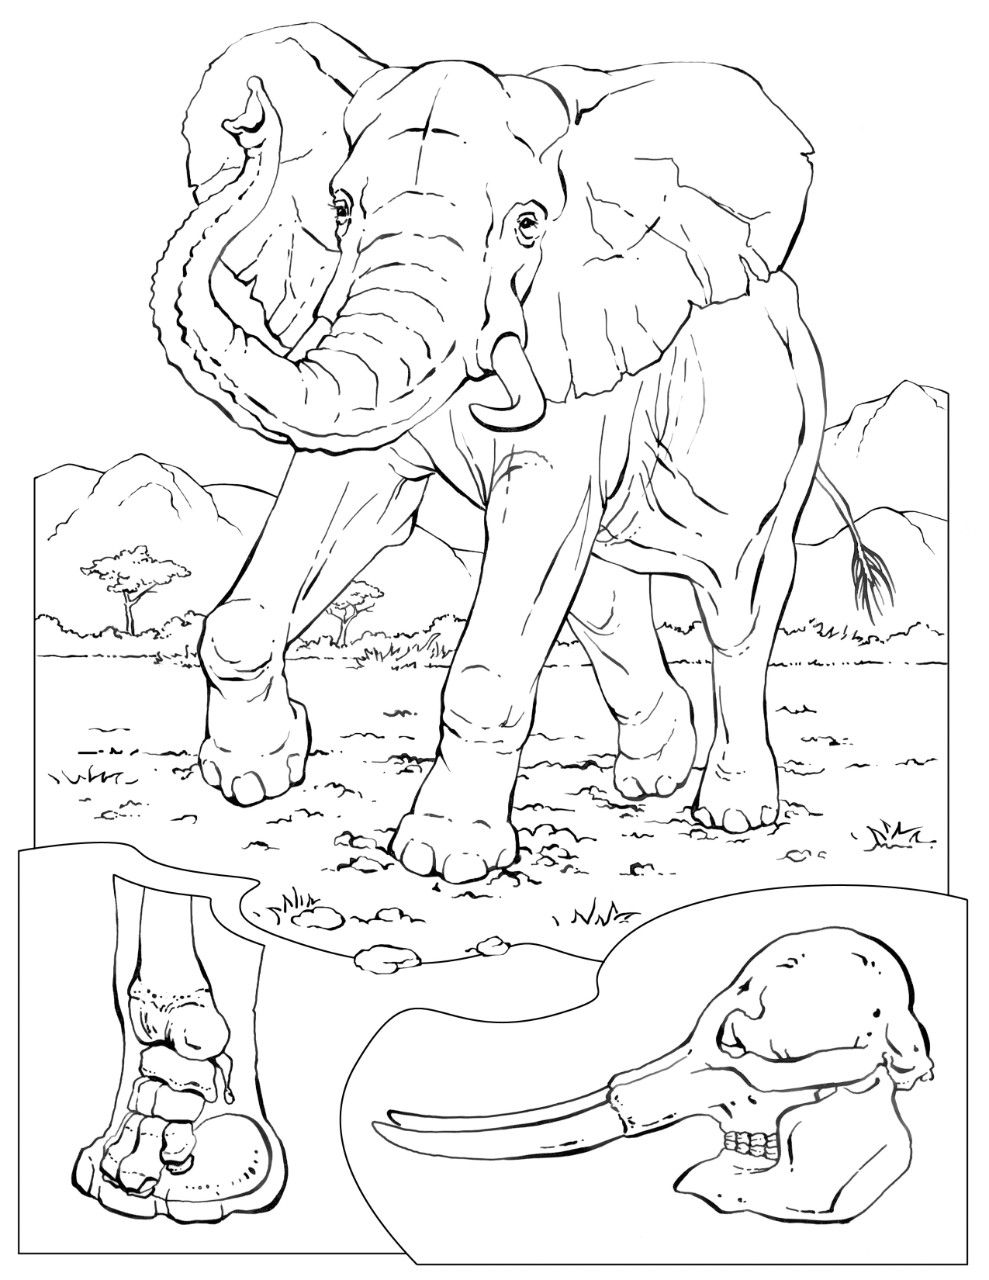 Coloring Book Animals A To I Elephant Coloring Page Animal Coloring Pages Coloring Books